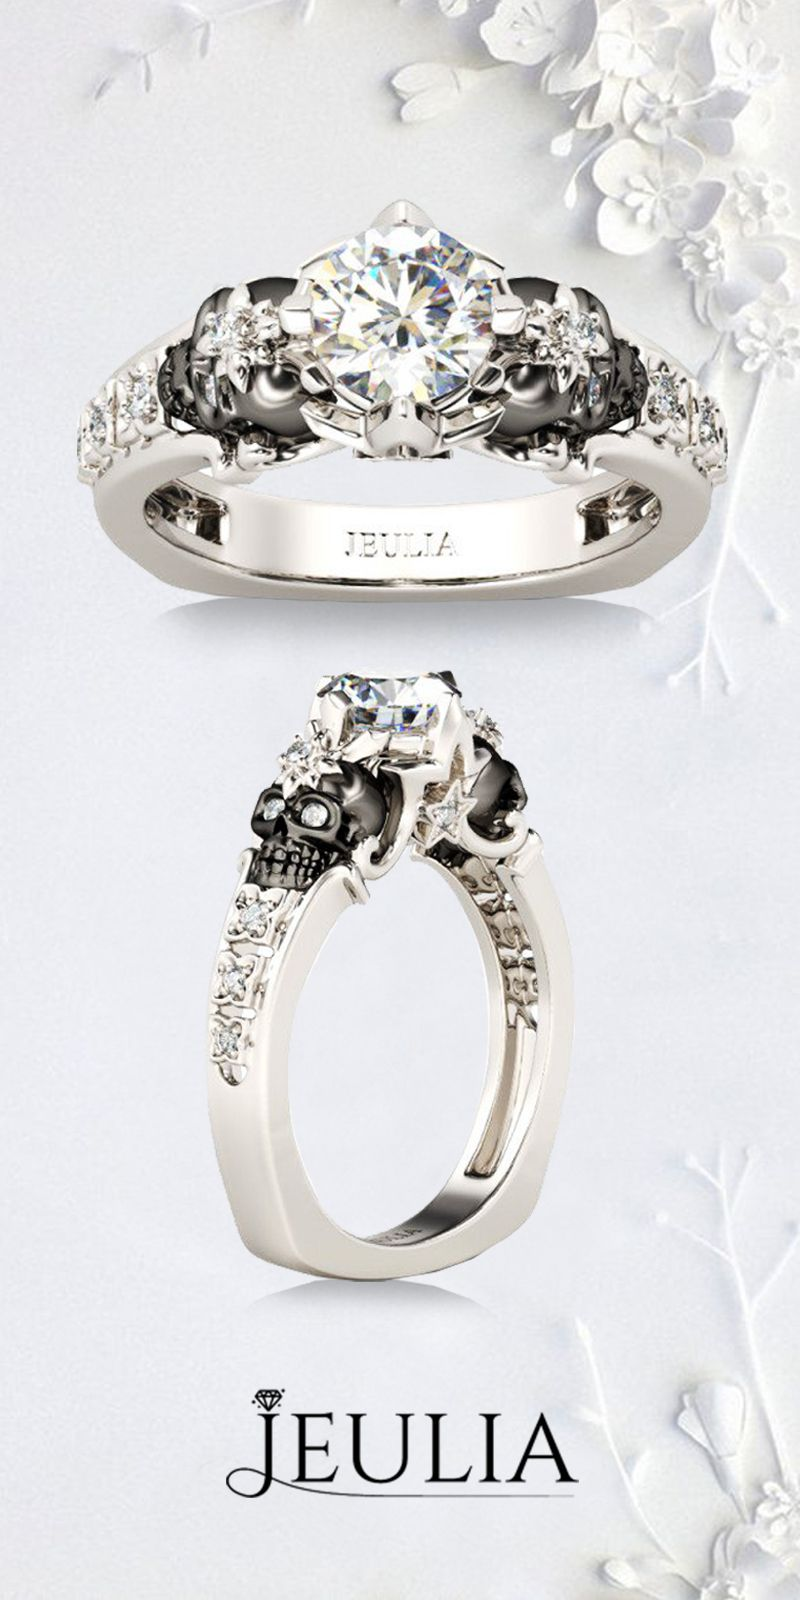 Jeulia Two Skull Floral & Star Design Round Cut Created White Sapphire Skull Ring. Show Your Exclusive Style! The Exclusive Two Tone Skull Ring From Jeulia. #Jeulia#Skull#Ring#Wedding#Engagement#Rings